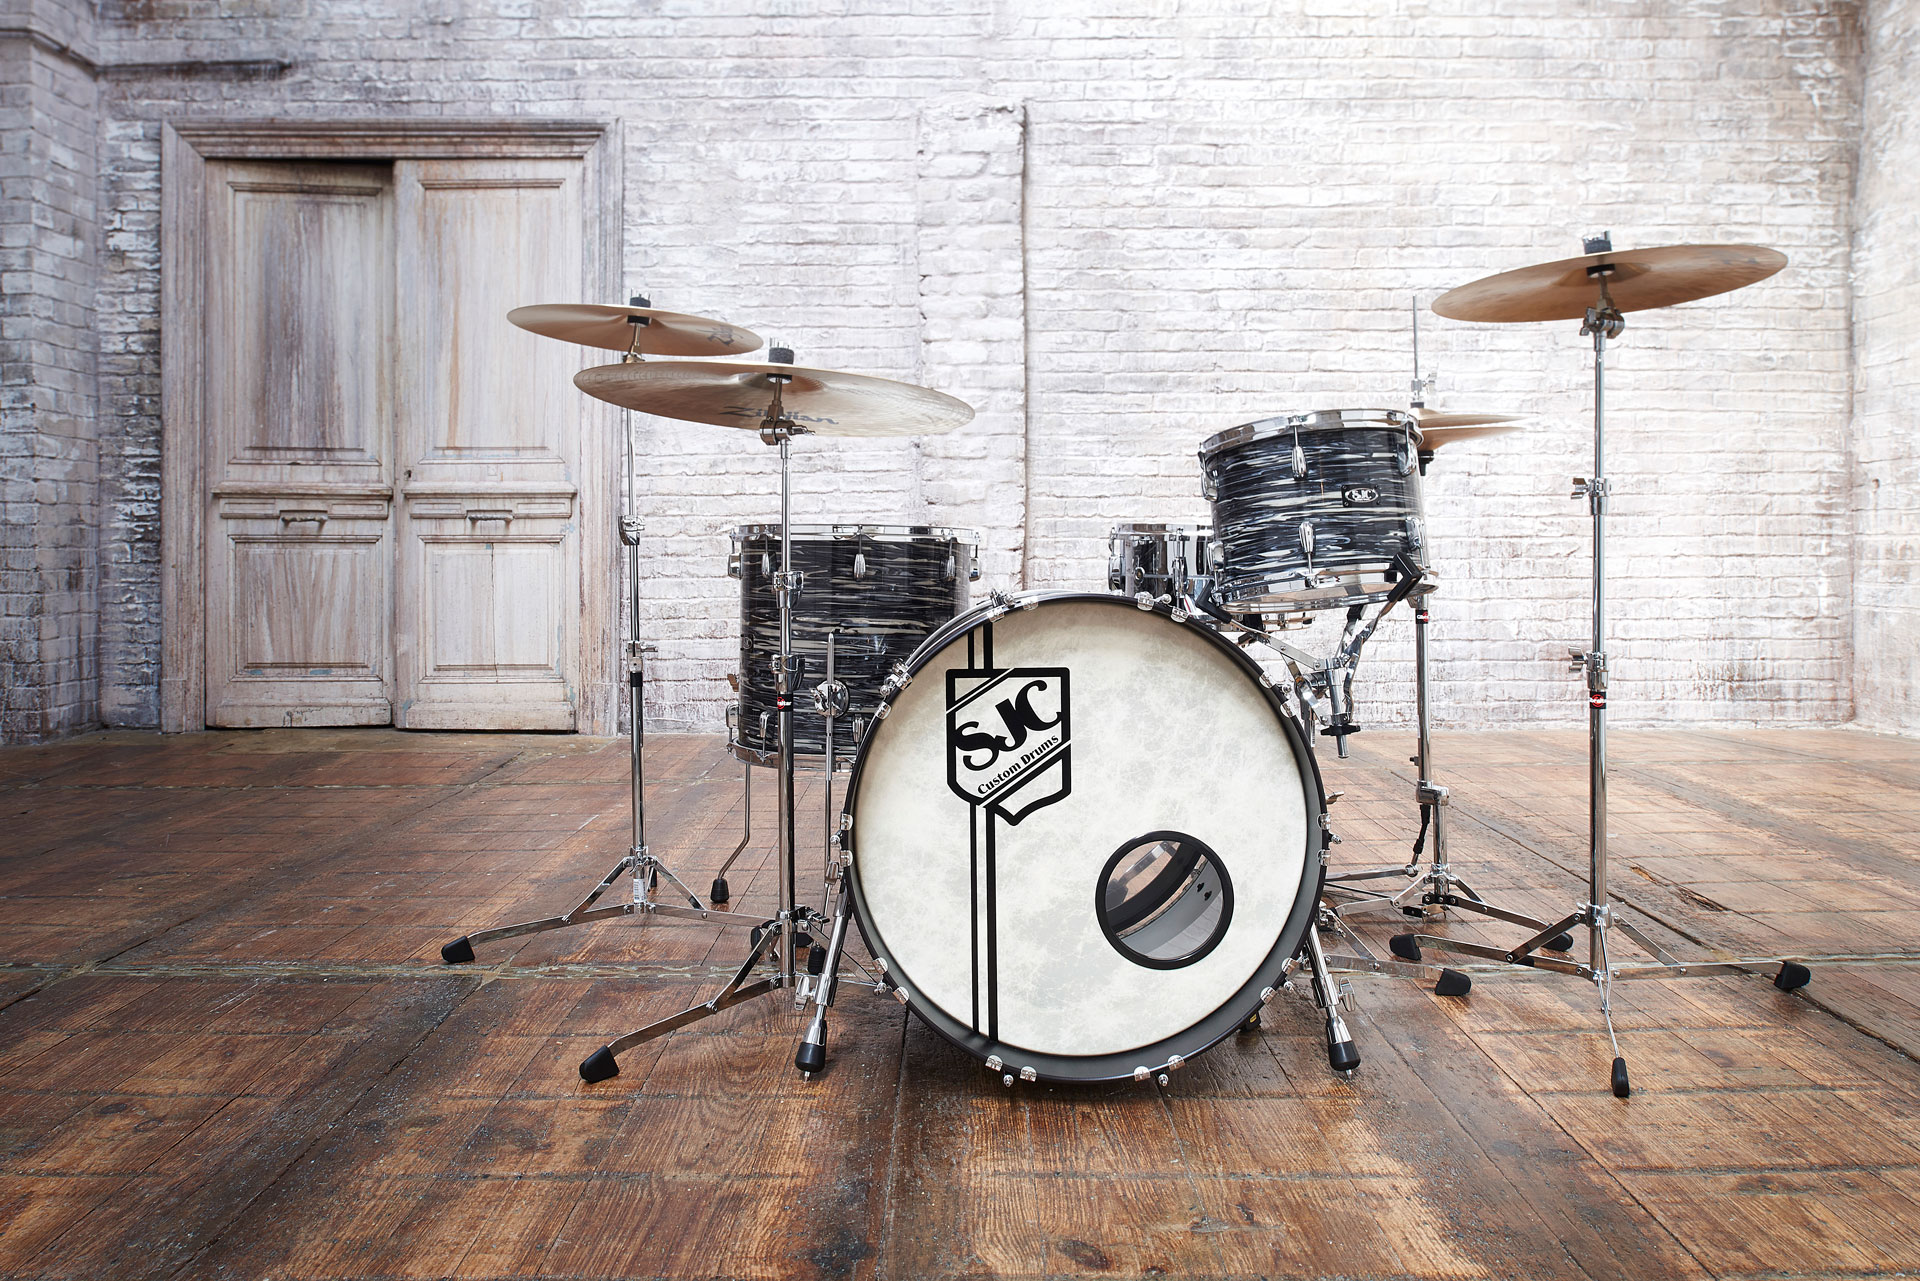 Drums musical instrument studio product photography by UK photographer Del Manning